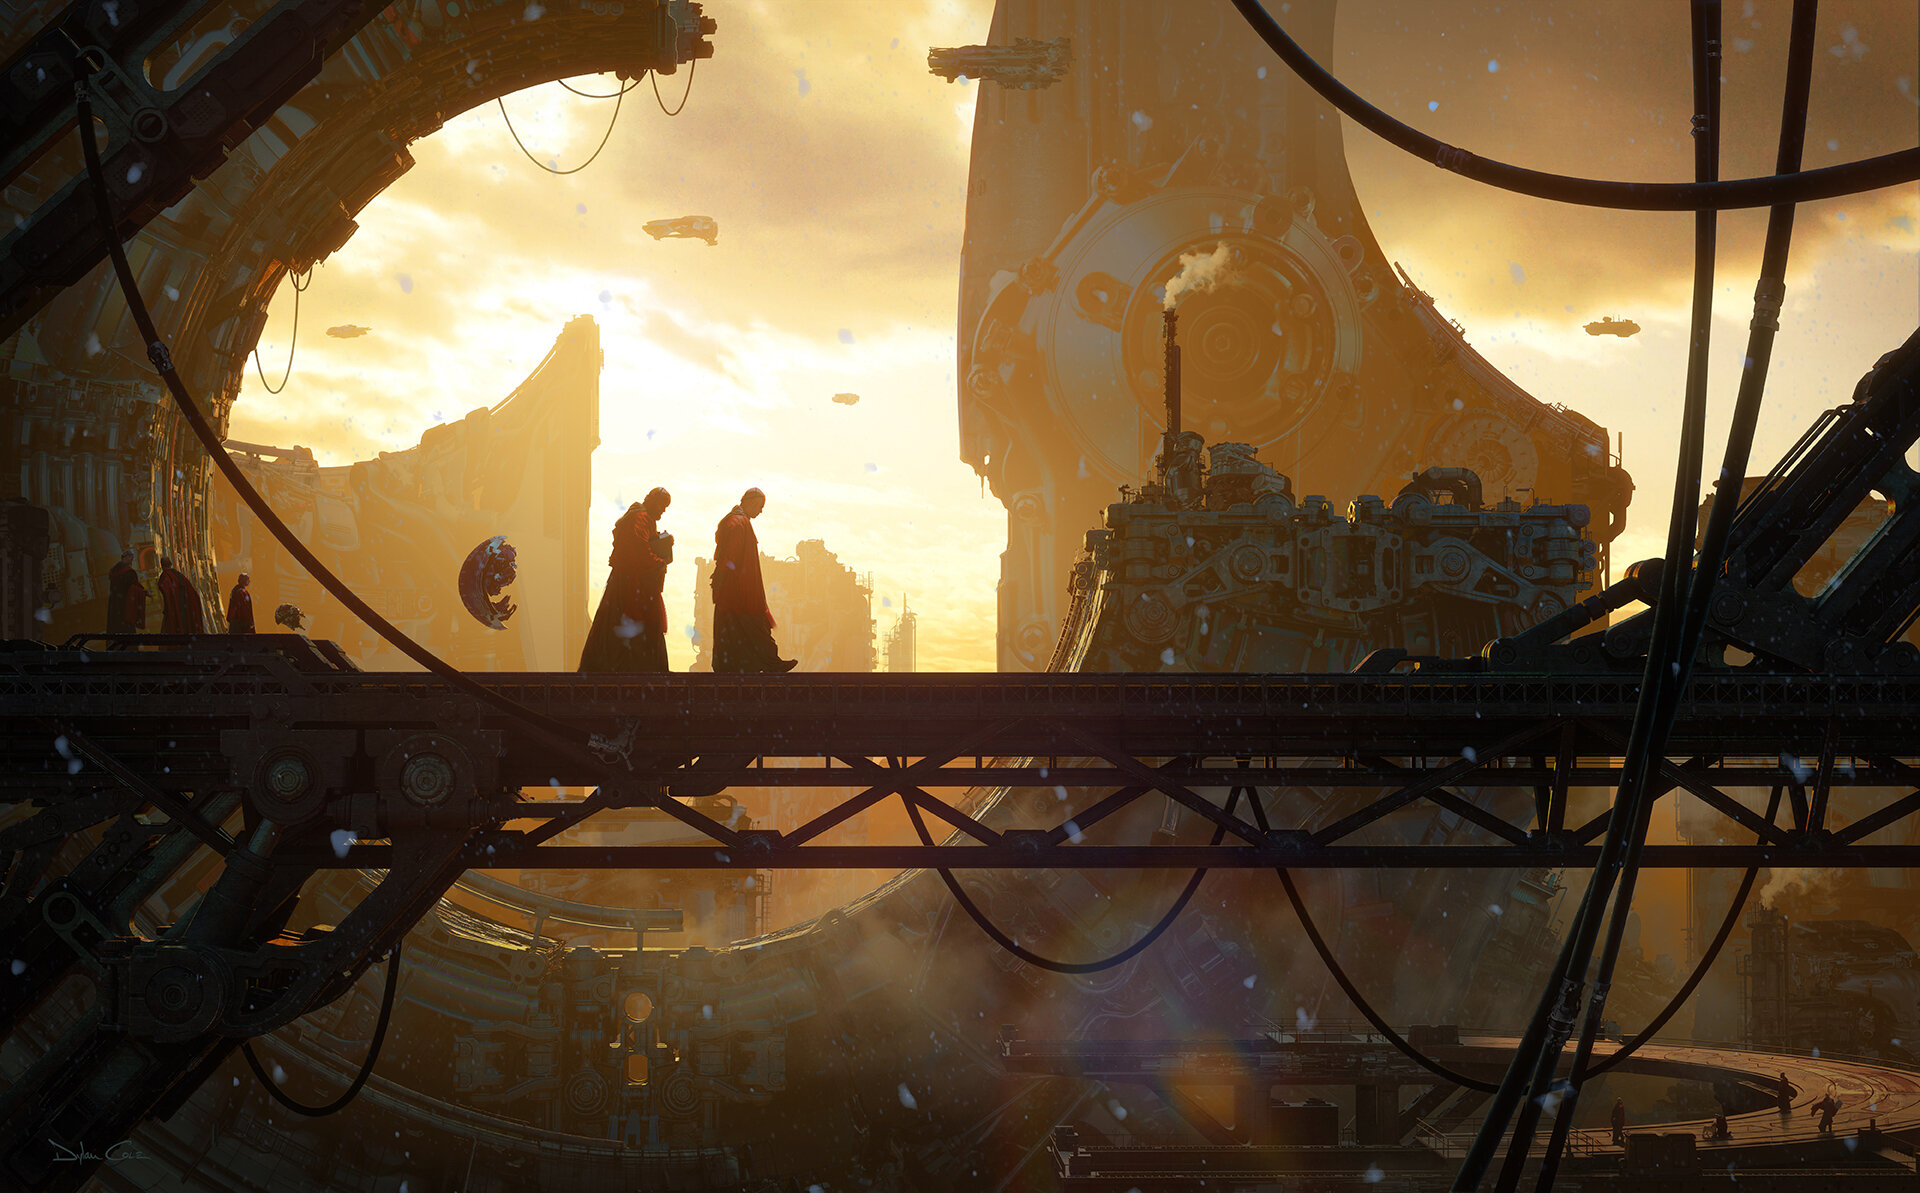 The Stunning Sci-Fi Concept Art of Dylan Cole